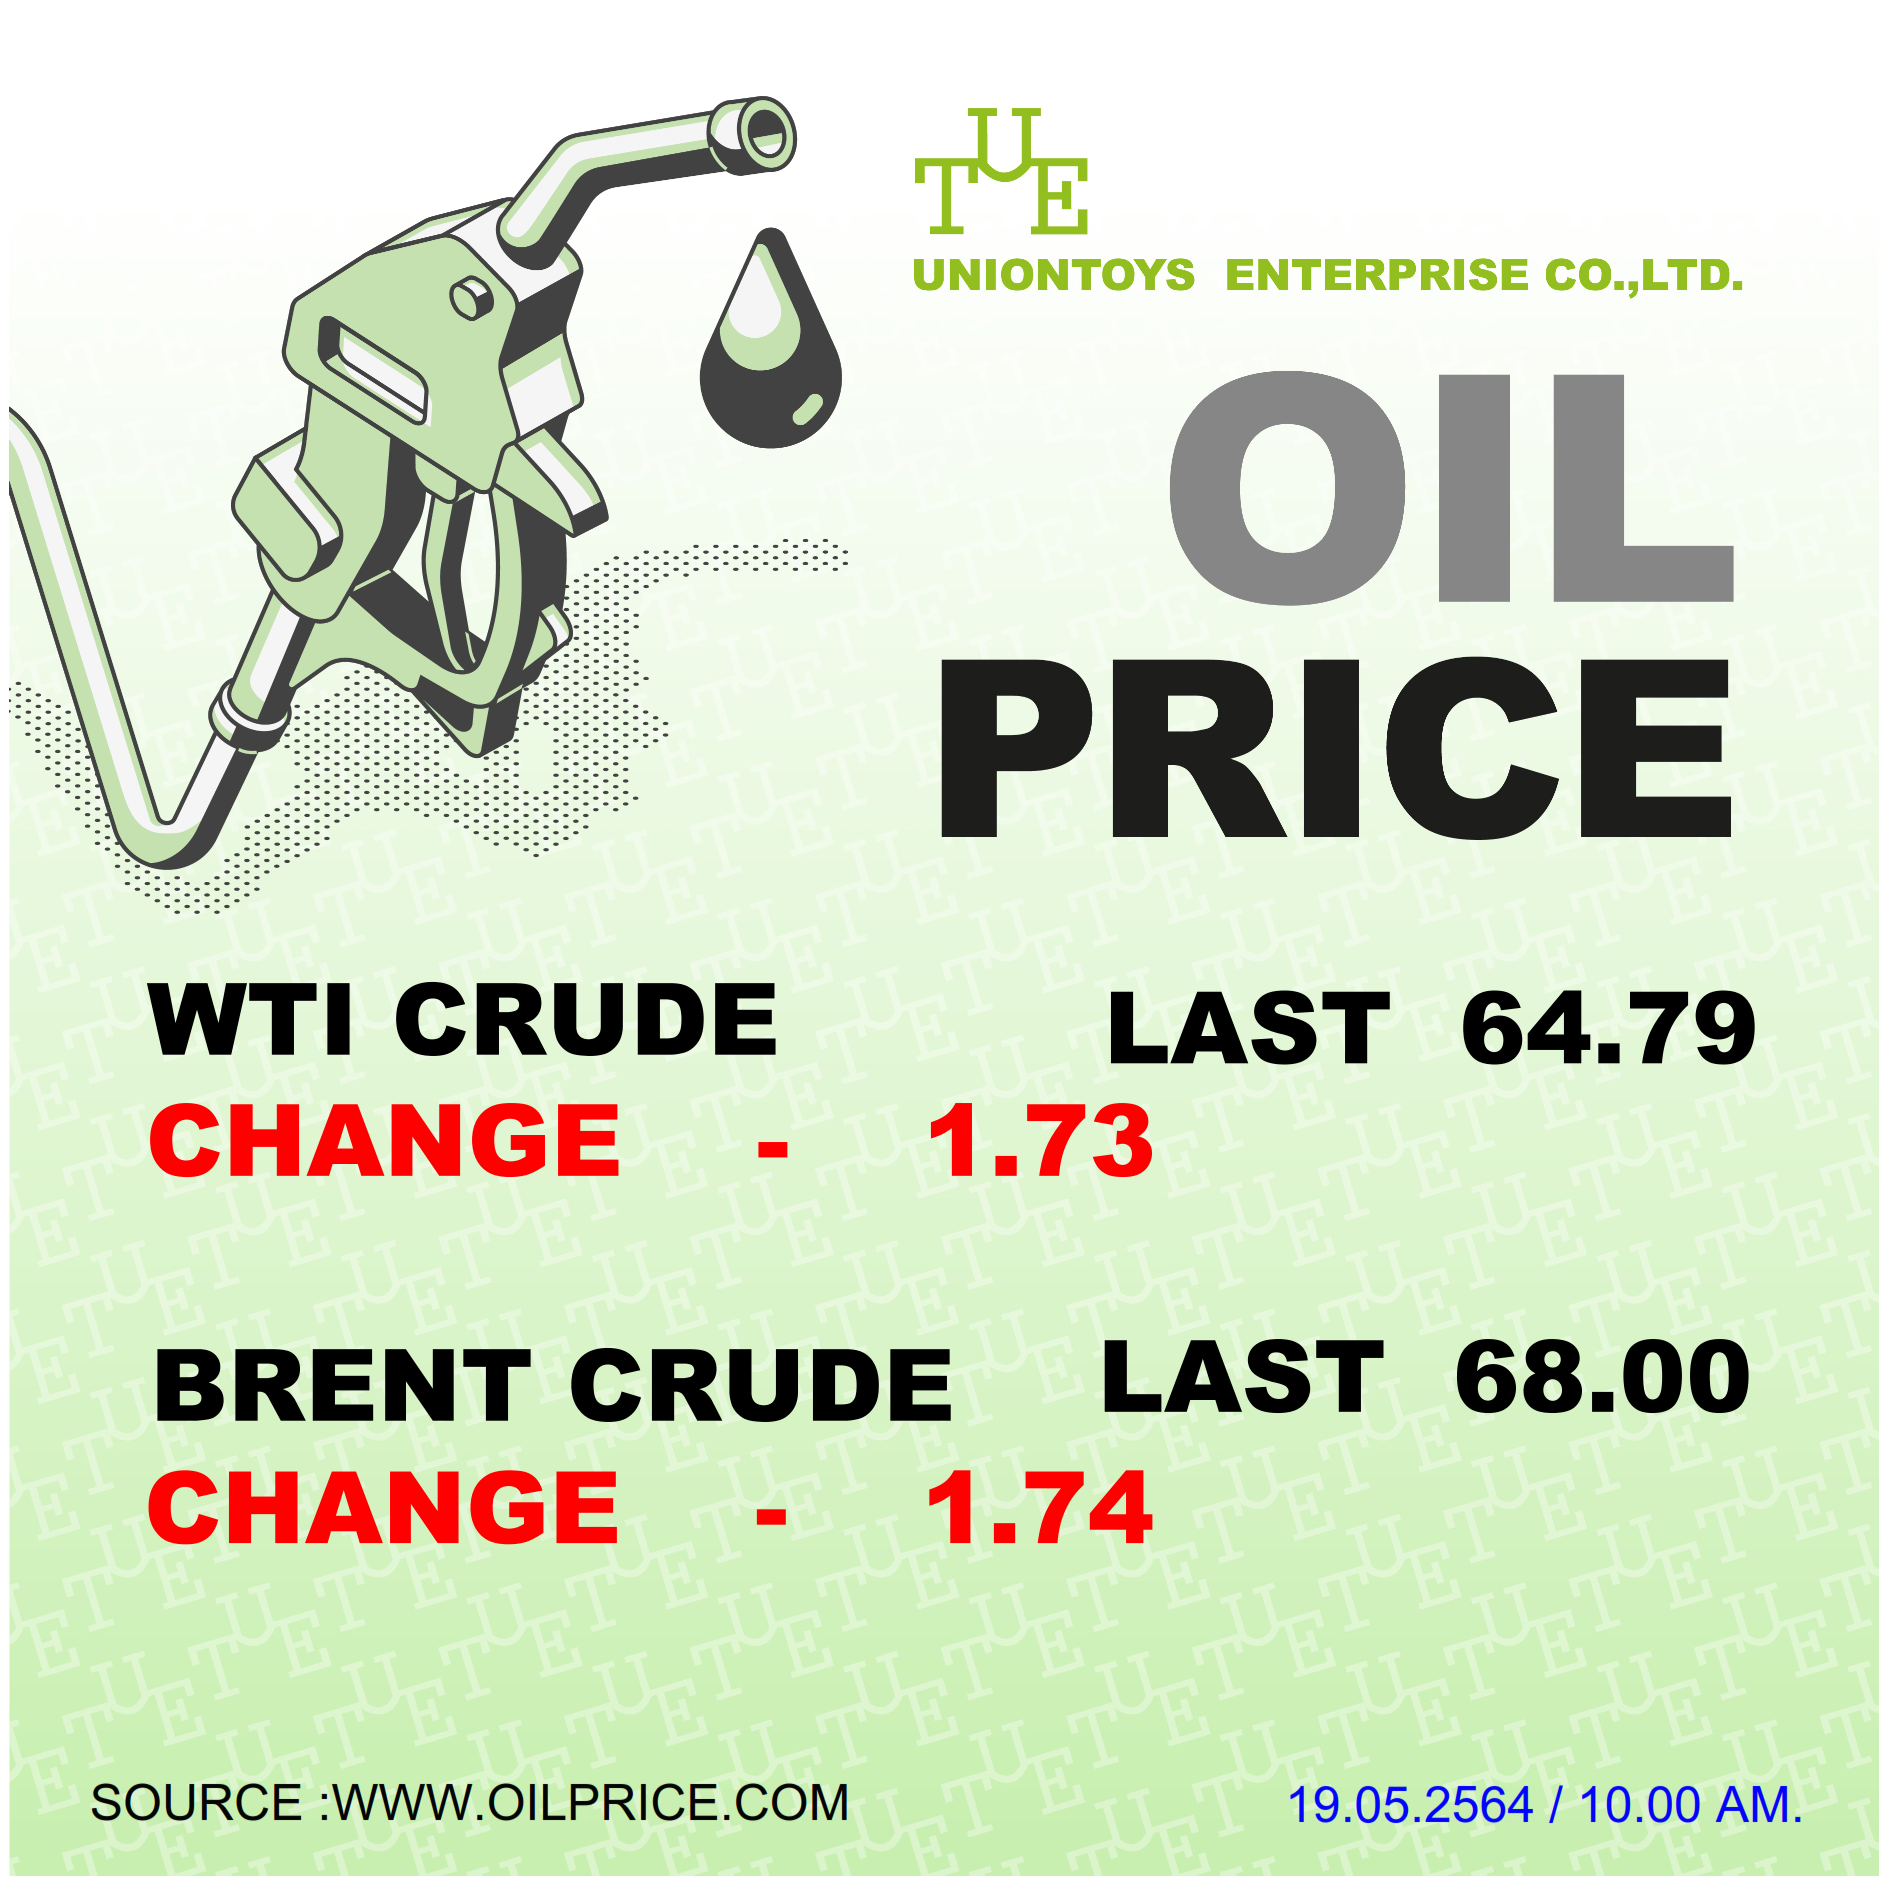 Uniontoys Oil Price Update - 19-05-2021